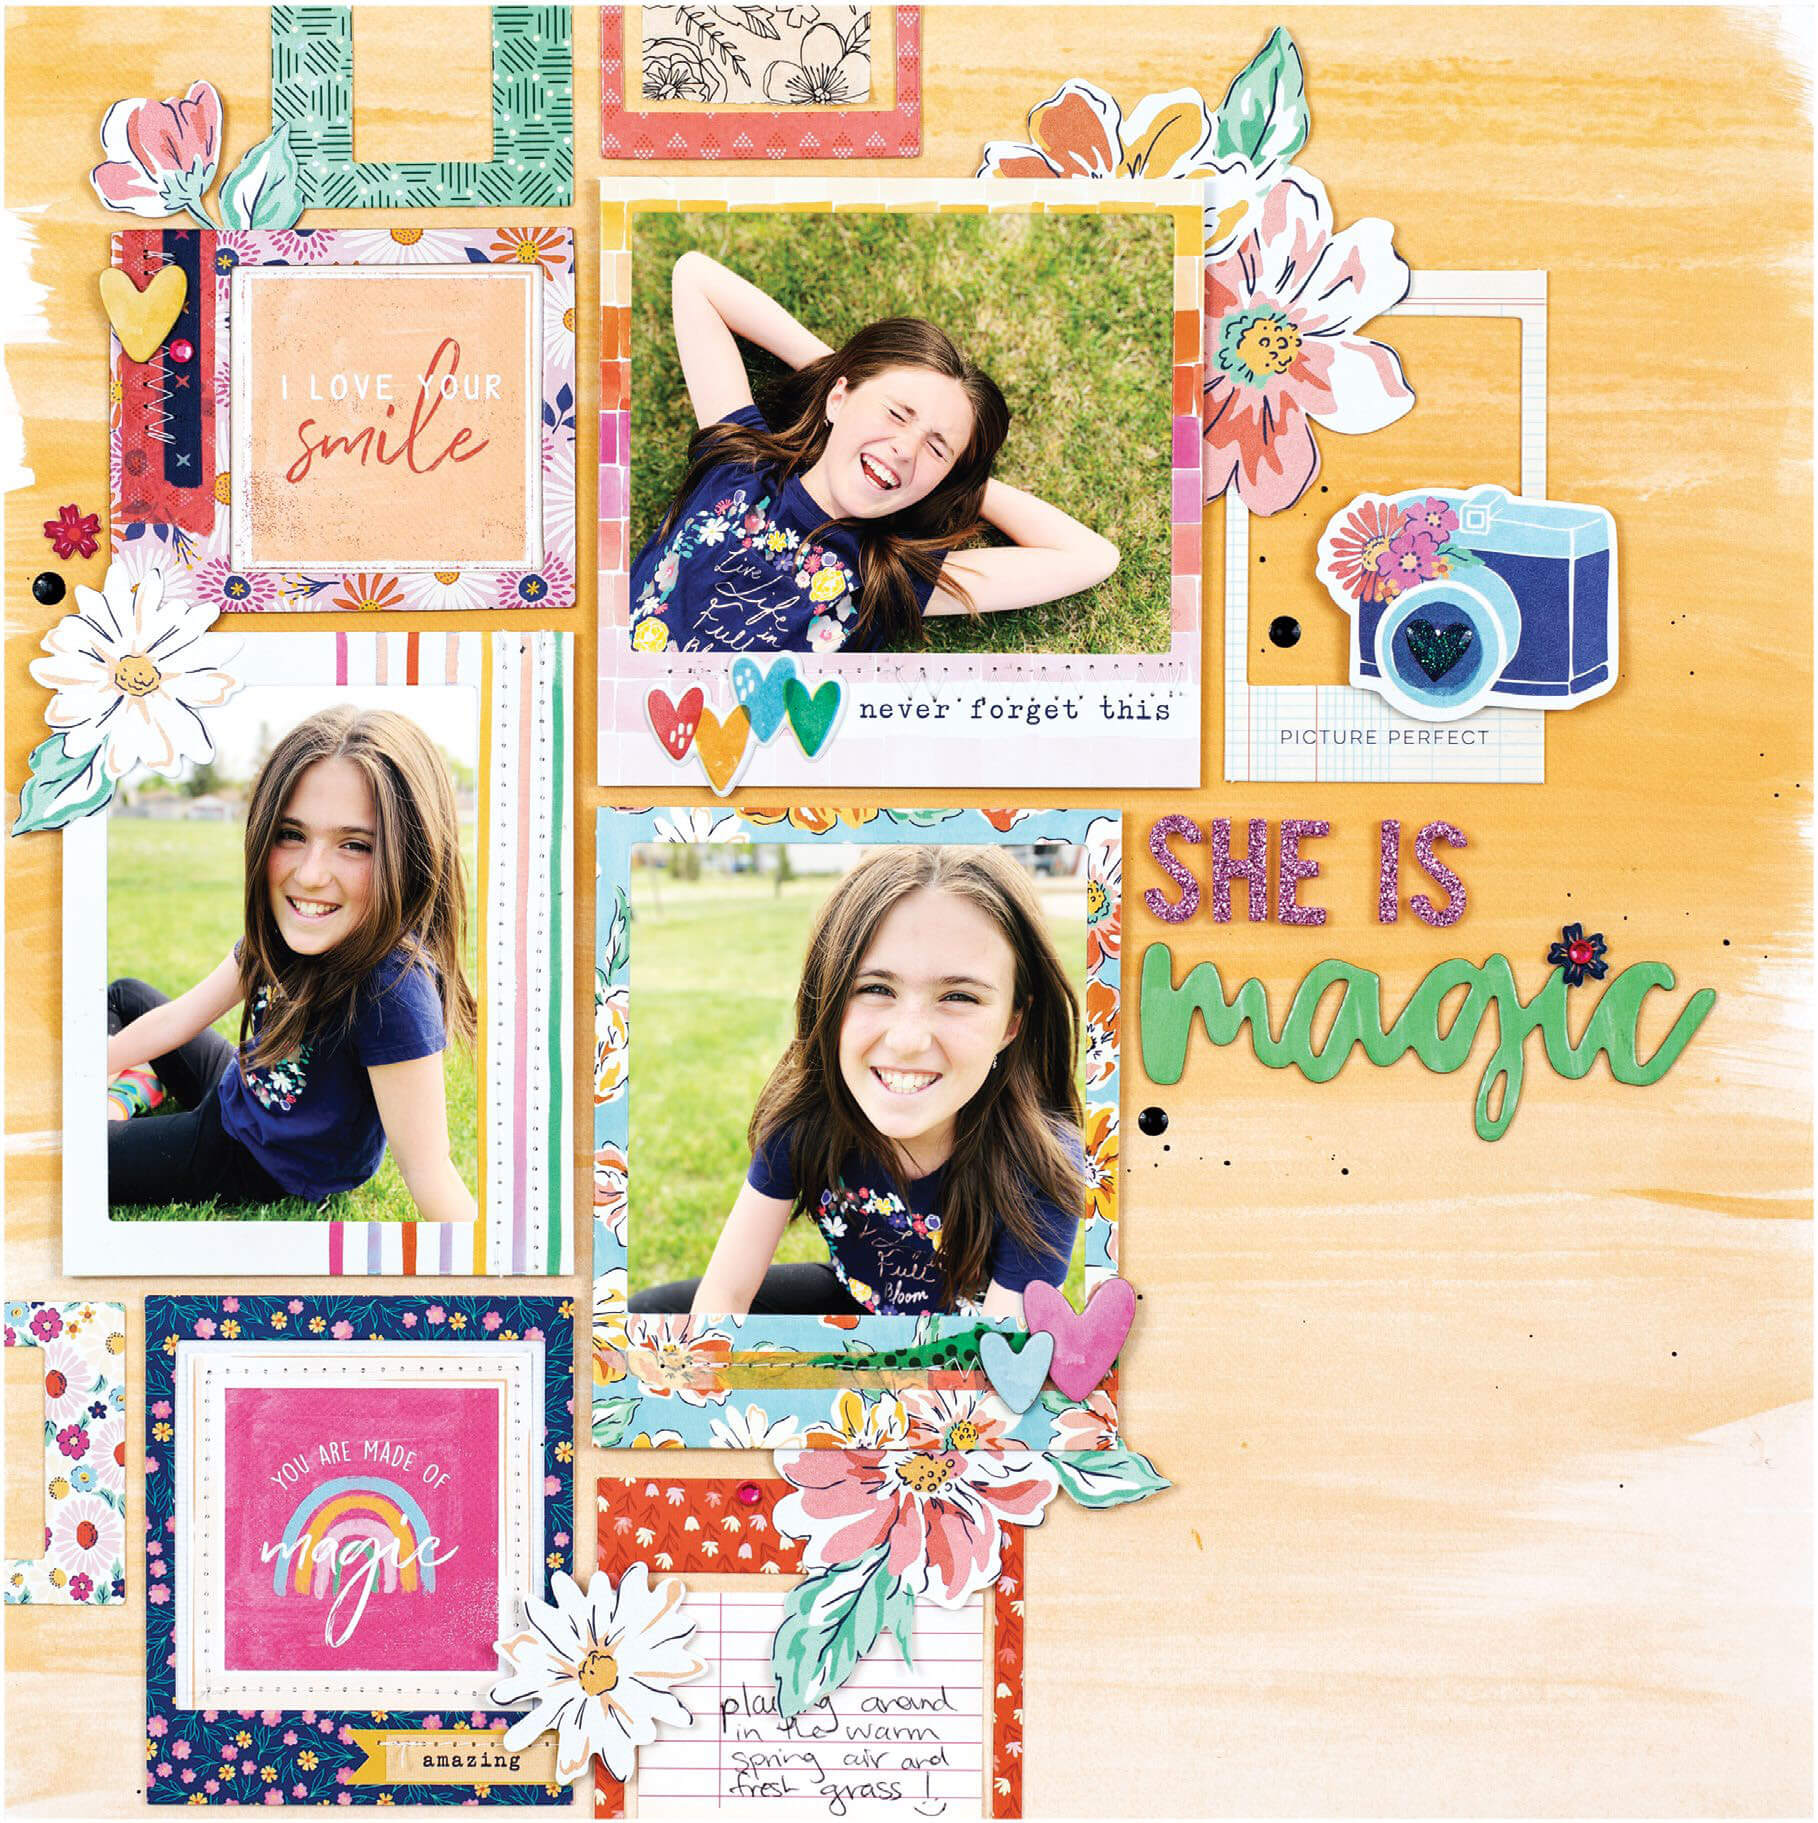 Scrapbook & Cards Today - Spring 2020 - She is Magic layout by Nicole Nowosad